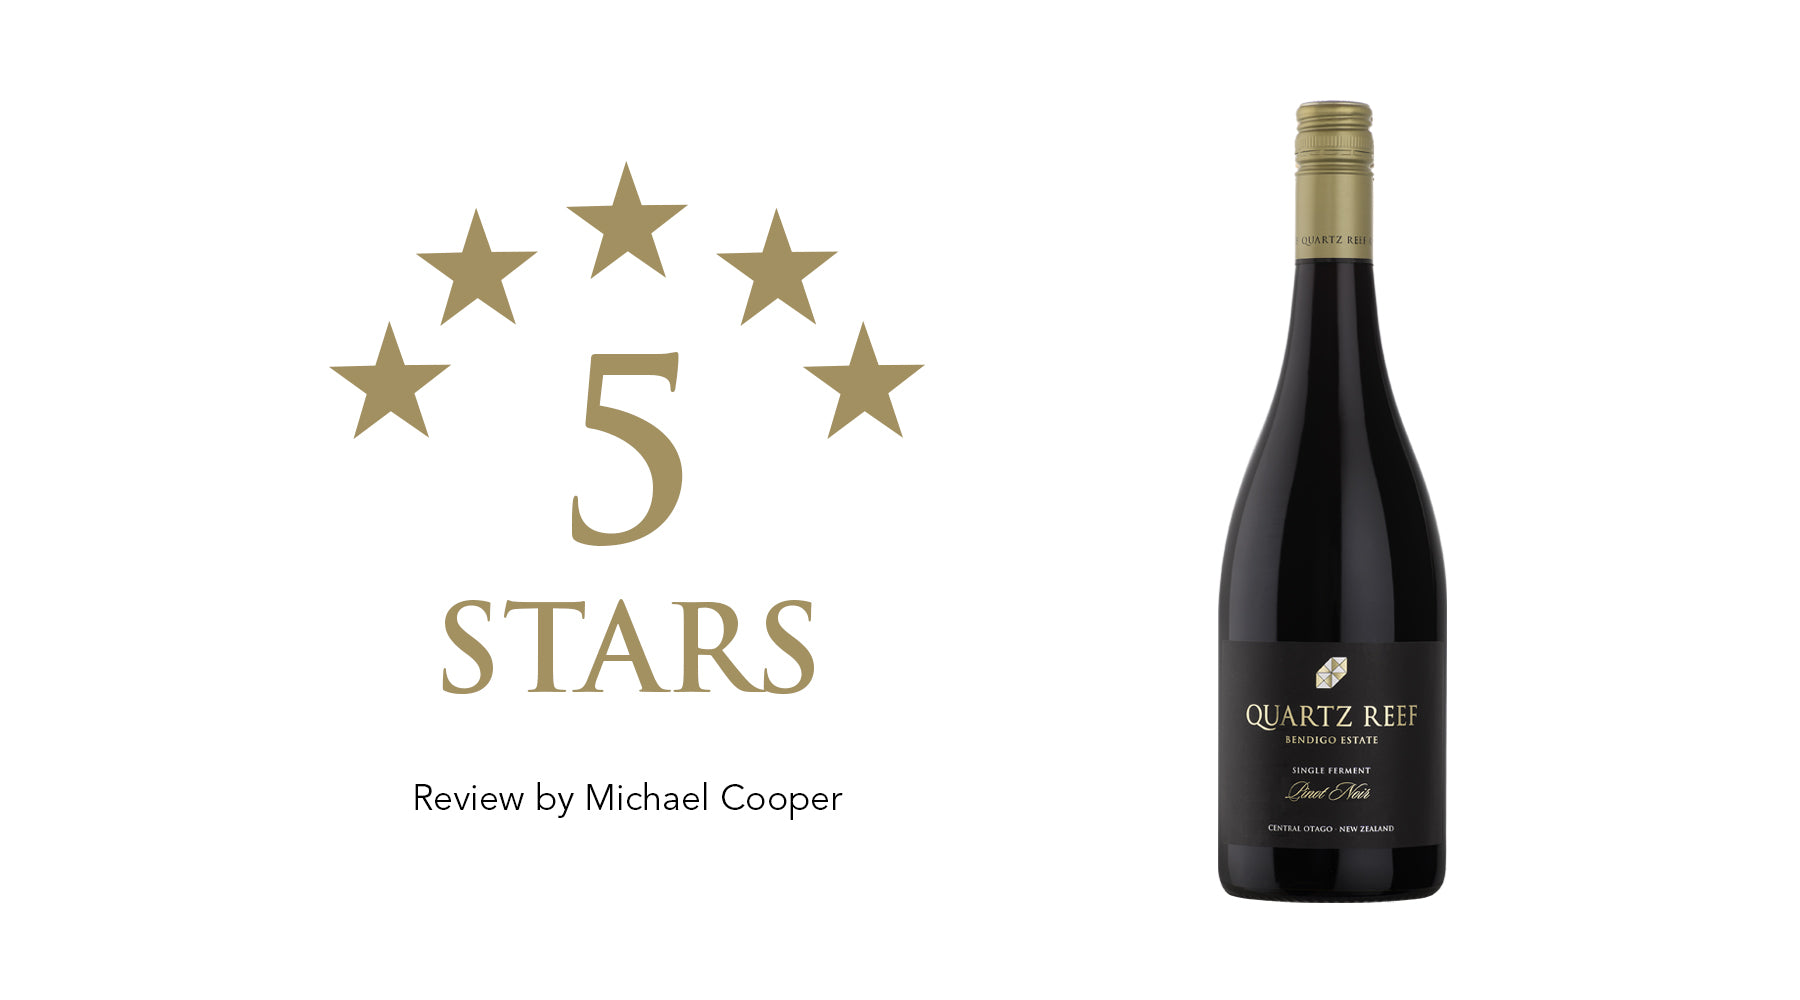 Single Ferment Pinot Noir 2019 - Awarded 5 Stars and Super Classic